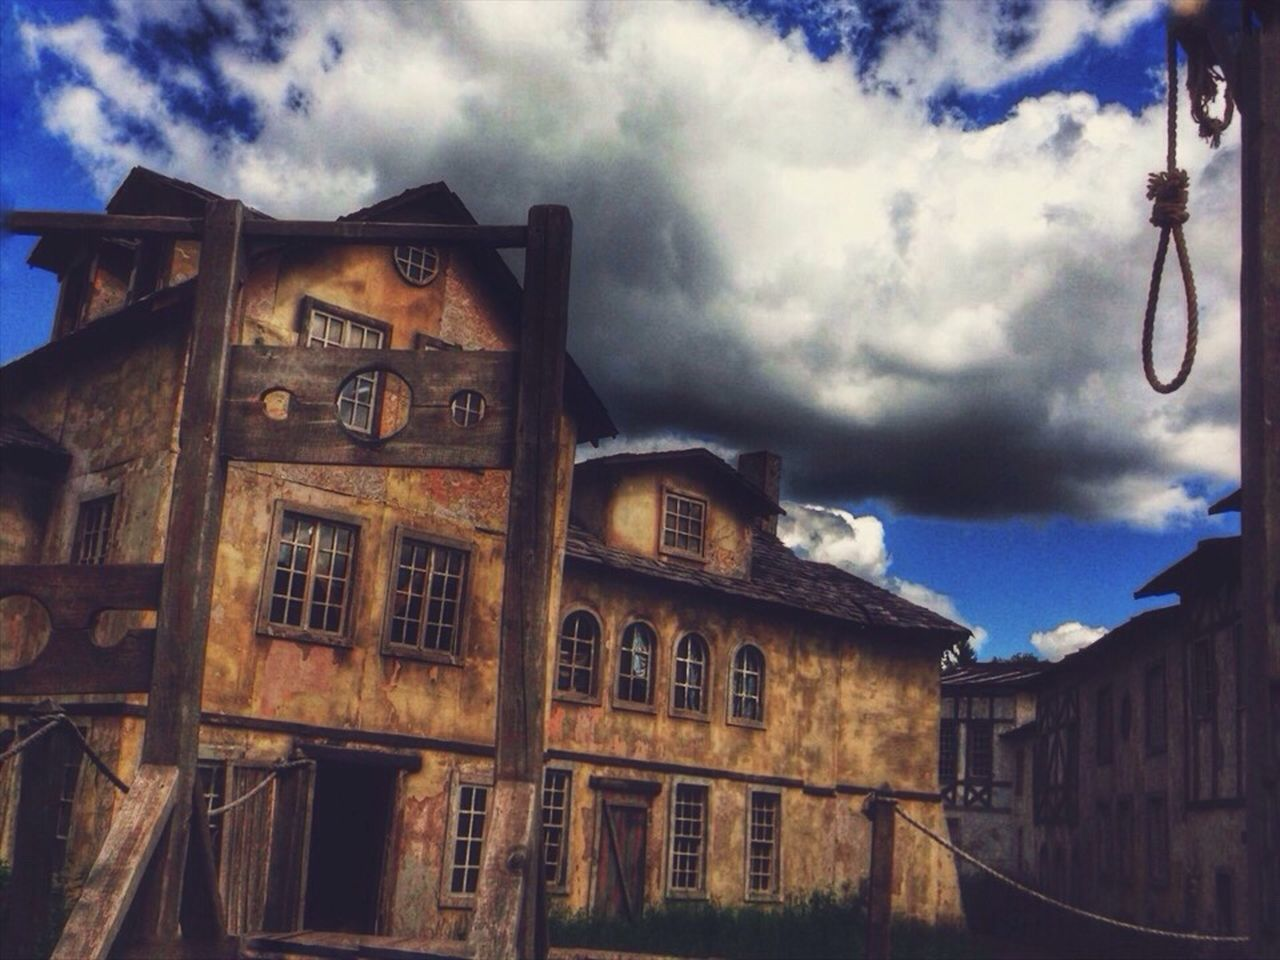 Sky Architecture Building Exterior Built Structure Cloud - Sky Abandoned Window No People Outdoors Day Low Angle View